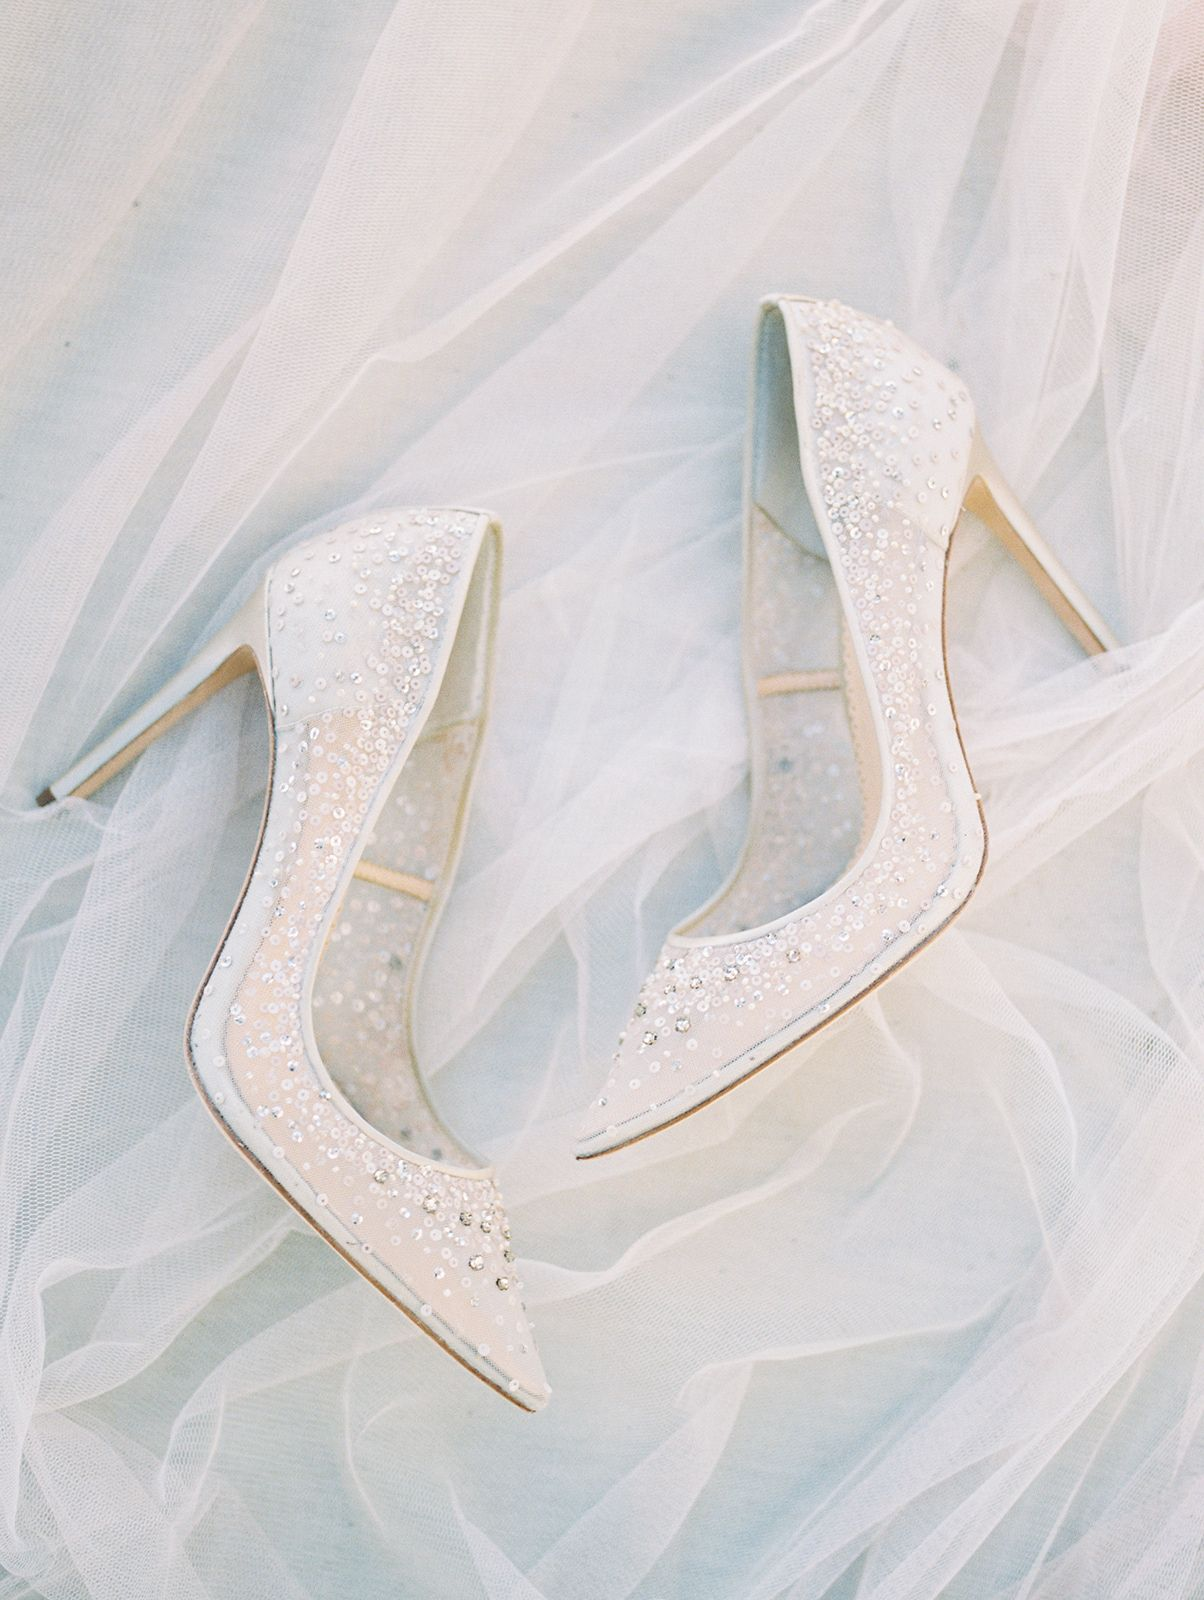 e050d30b191 Nothing beats the comfort and glam of our Bella Belle Elsa Ivory wedding  heel stiletto. Delicate and simple ivory beads embellishments